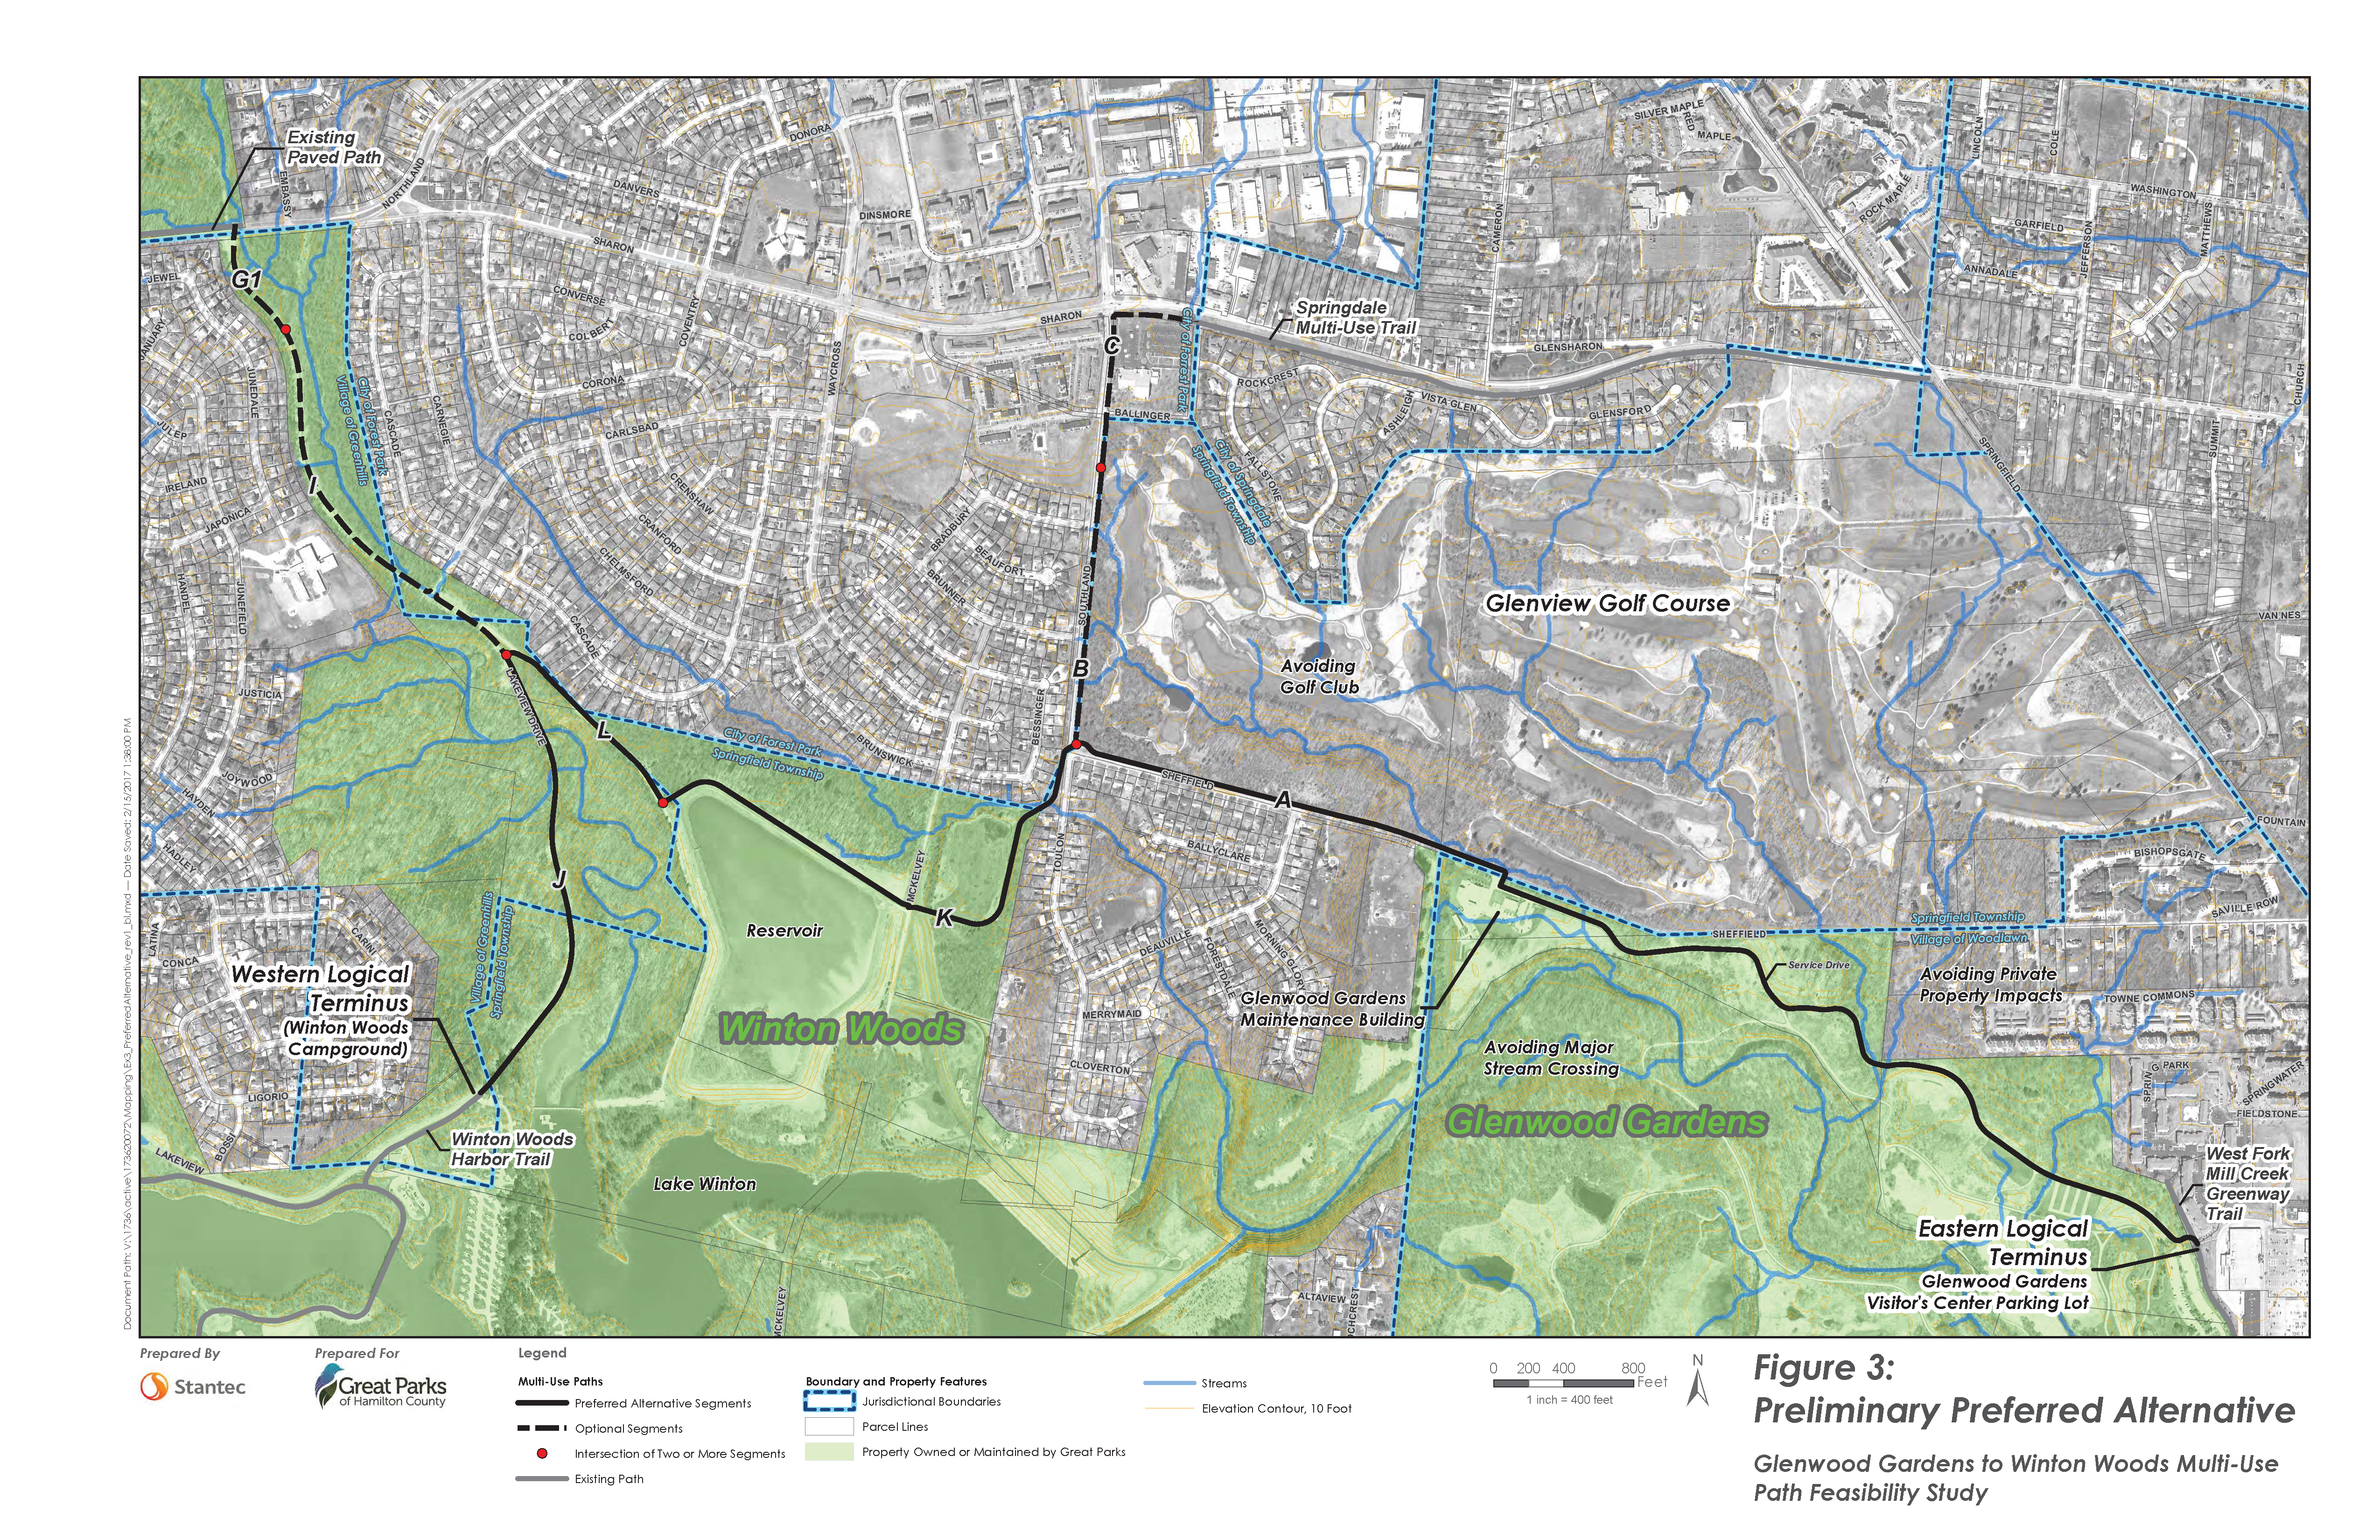 An aerial view of the proposed trail route connecting Glenwood Gardens to Winton Woods.